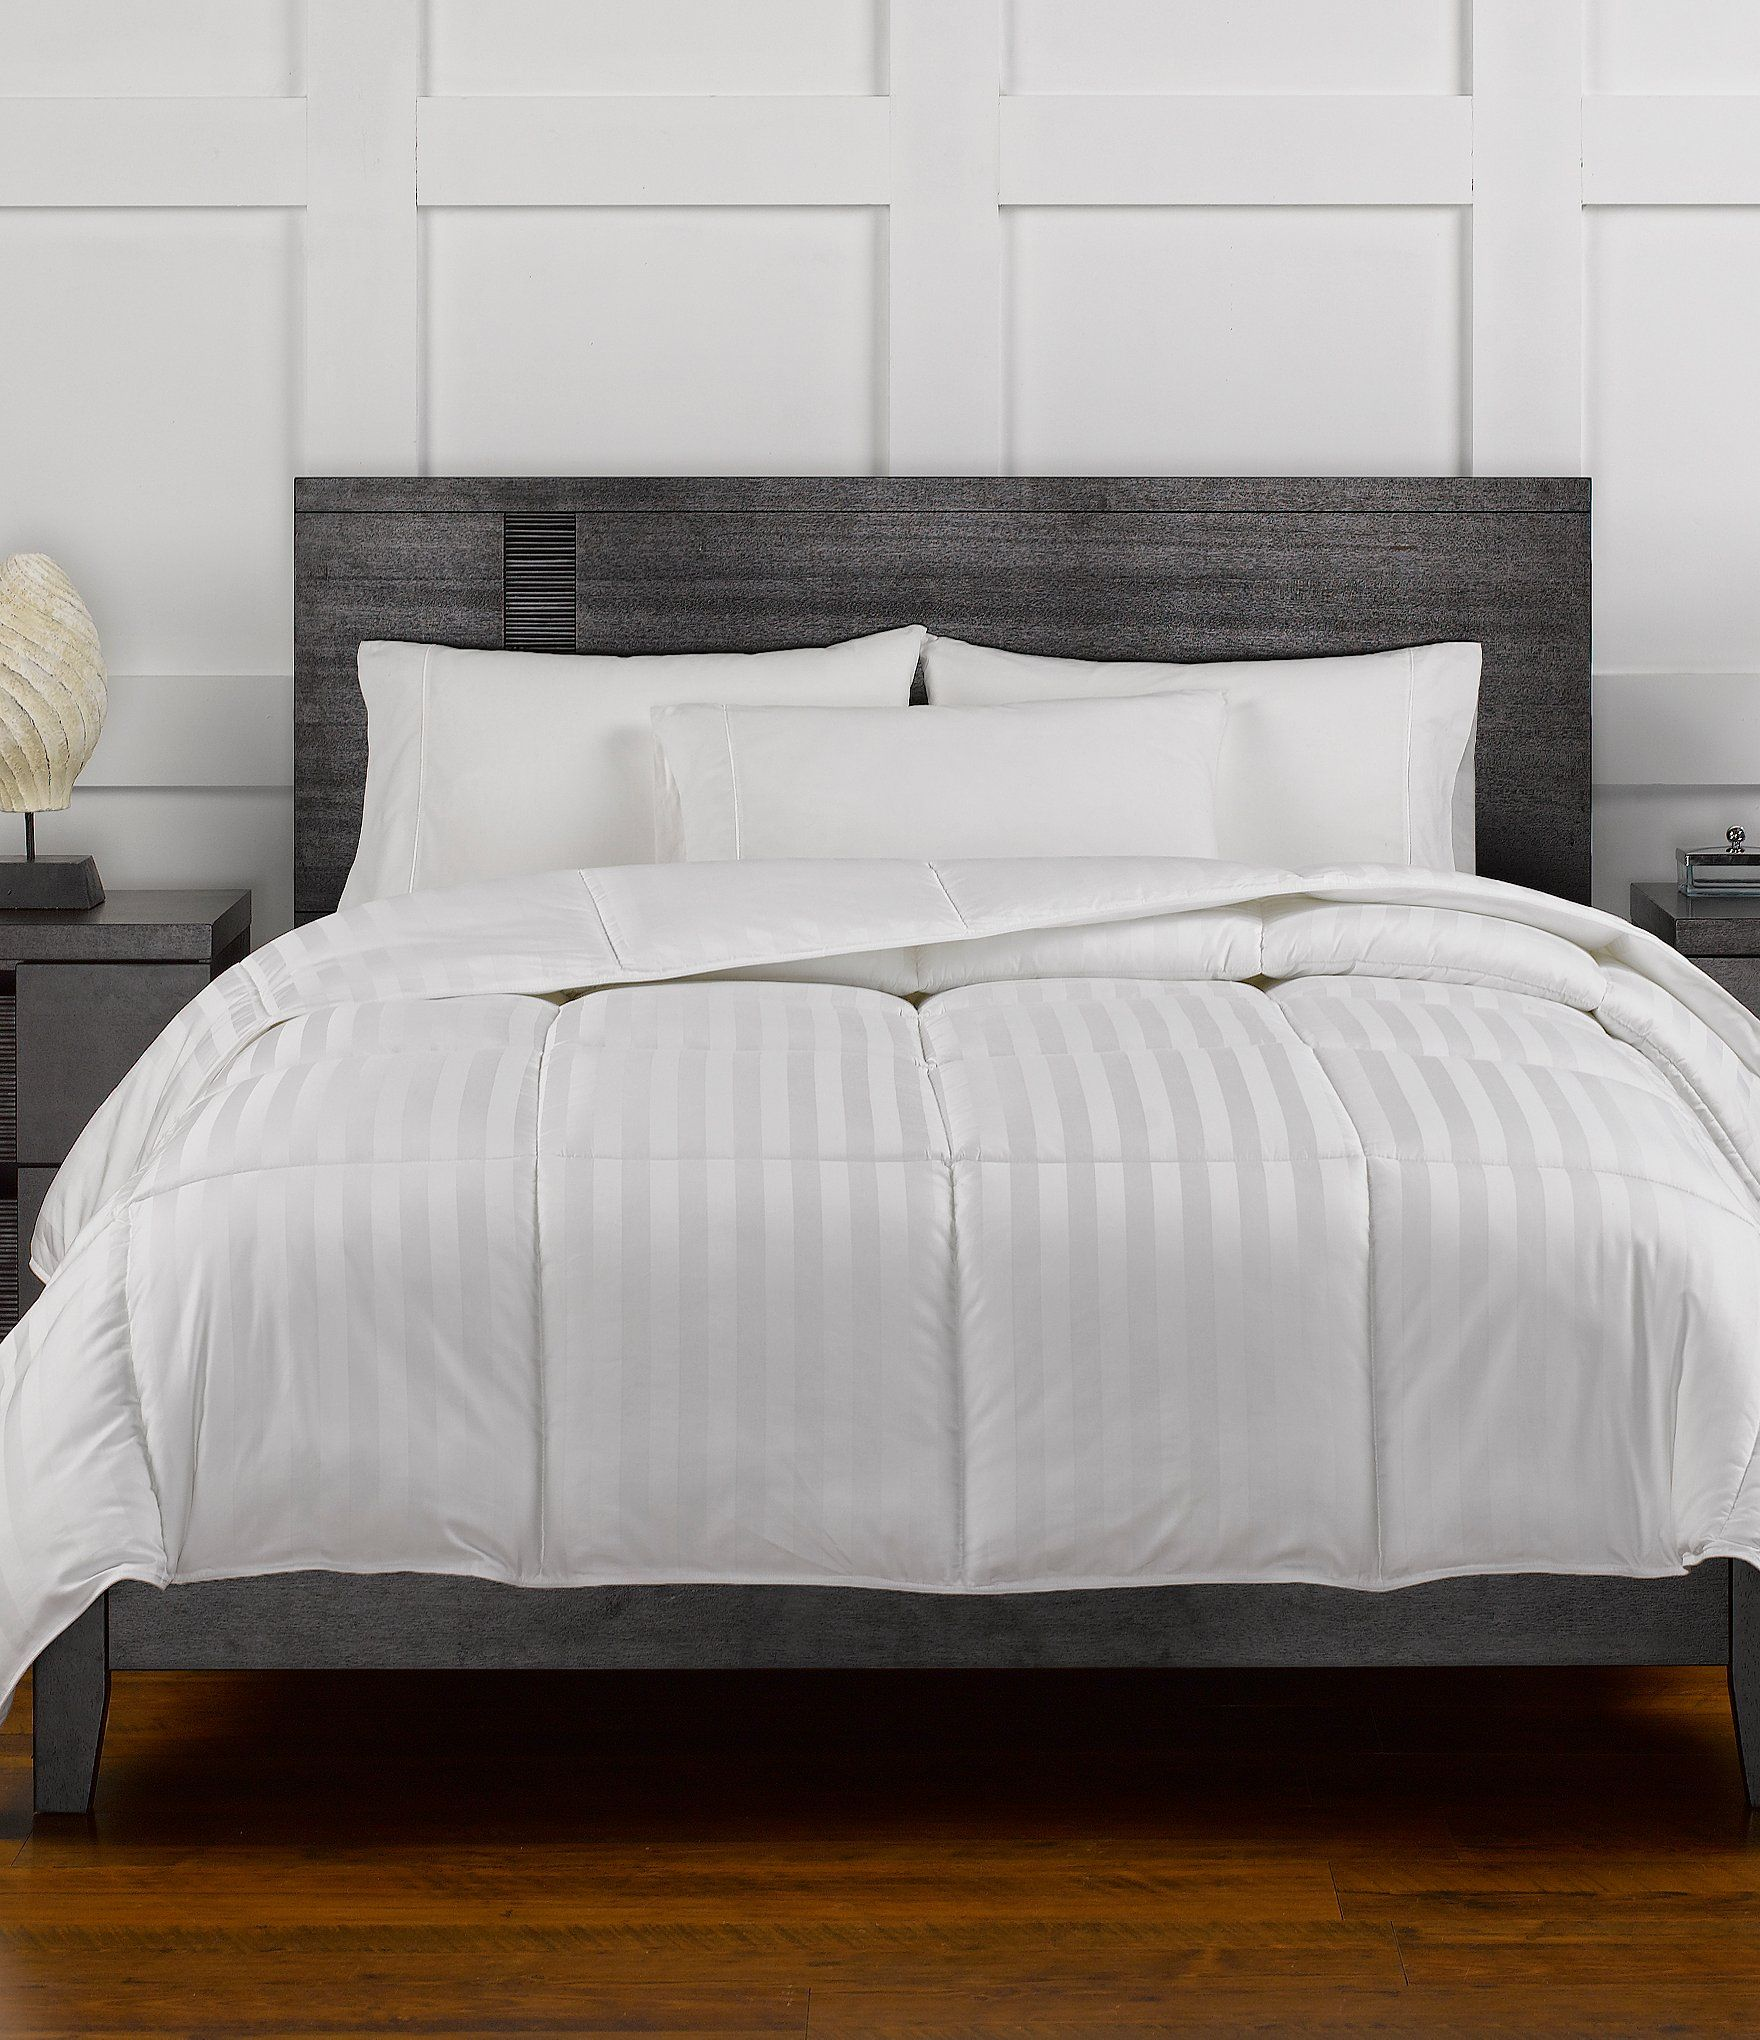 Noble Excellence Year 045 Round Warmth Down Comforter Duvet